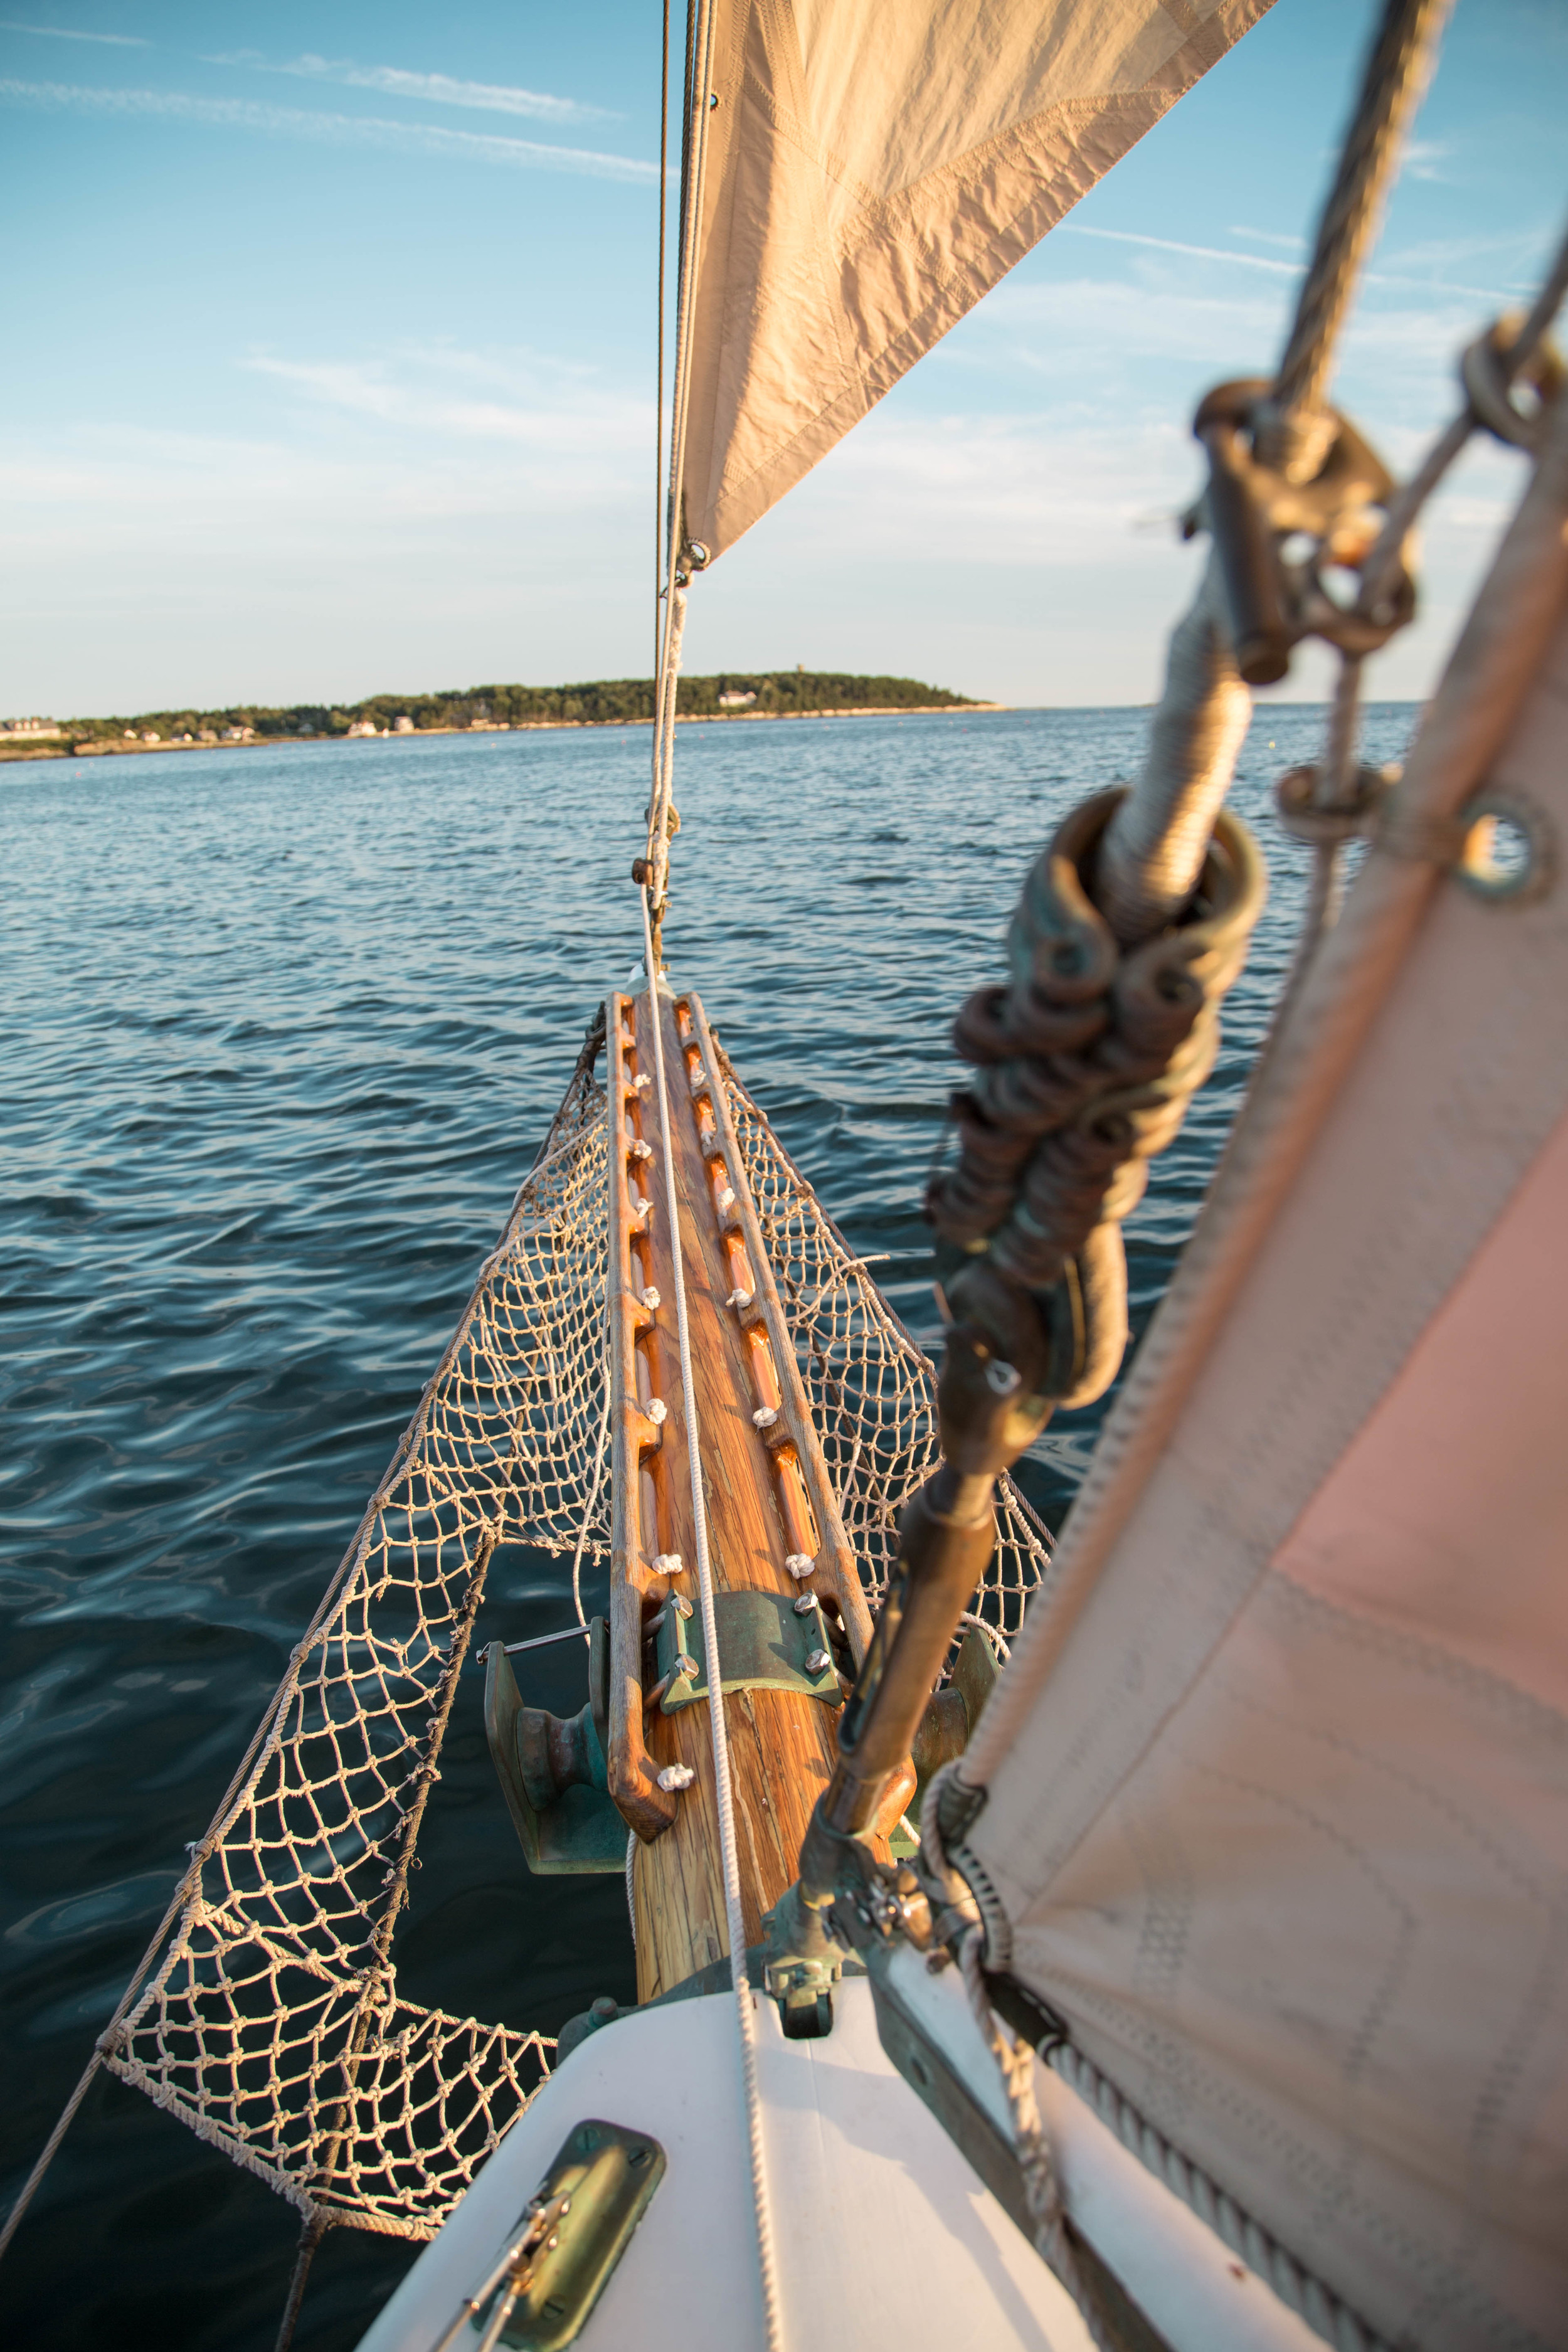 COAST LIFE  Aboard one of the fastest schooners in Casco Bay